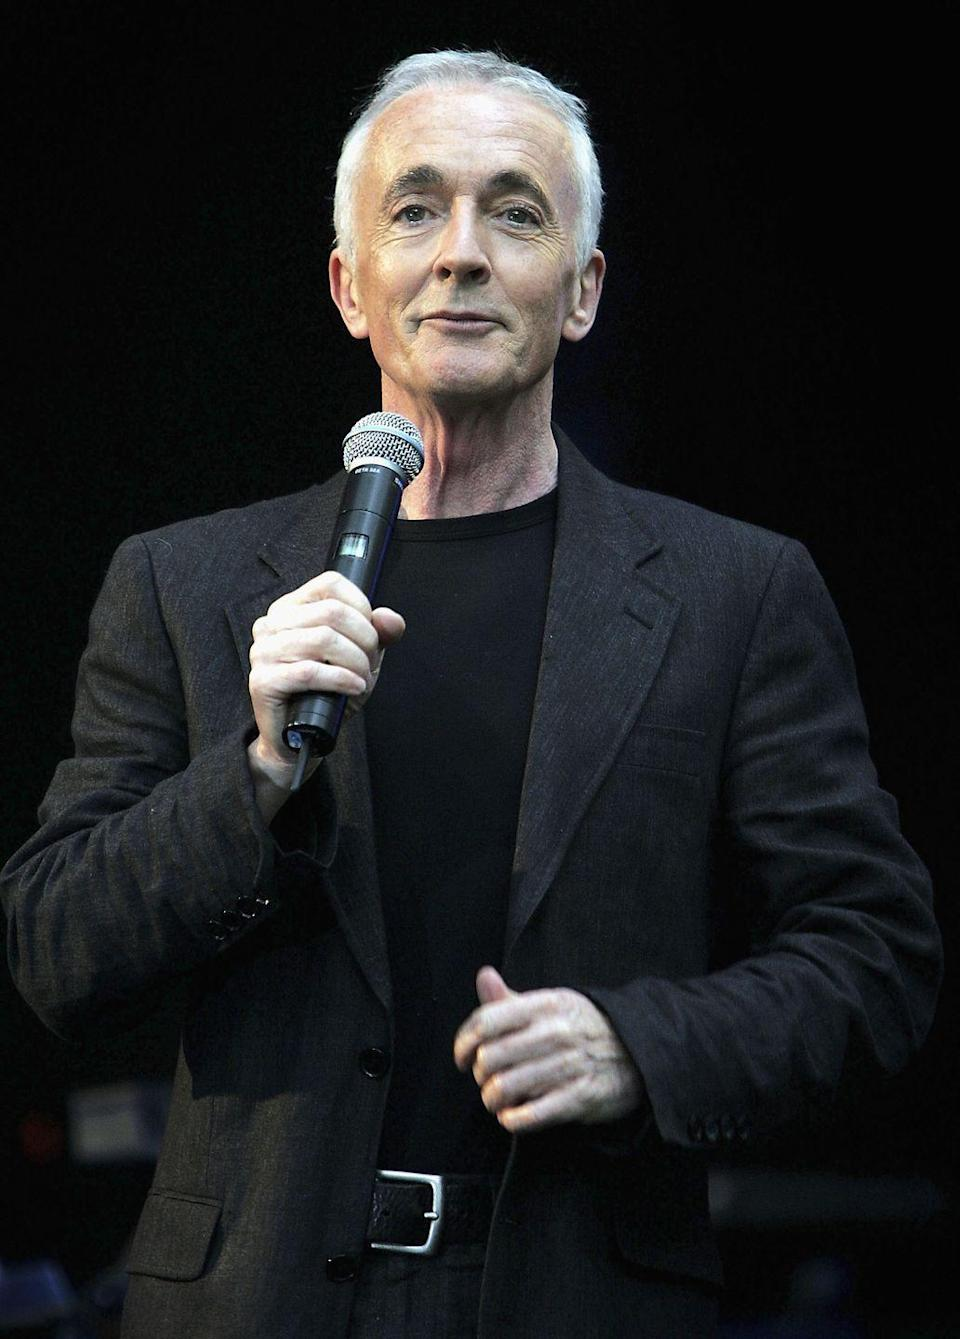 <p>For the entire duration of the <em>Star Wars</em> franchise, Daniels has been the one sporting that famous gold plated robotic suit and providing the stiff and quirky voice of C-3PO. And even though Threepio didn't appear in <em>Solo: A Star Wars Story</em>, Daniels had a small cameo in a different role, which makes him the only actor to have appeared in all 11 theatrical movies. </p>